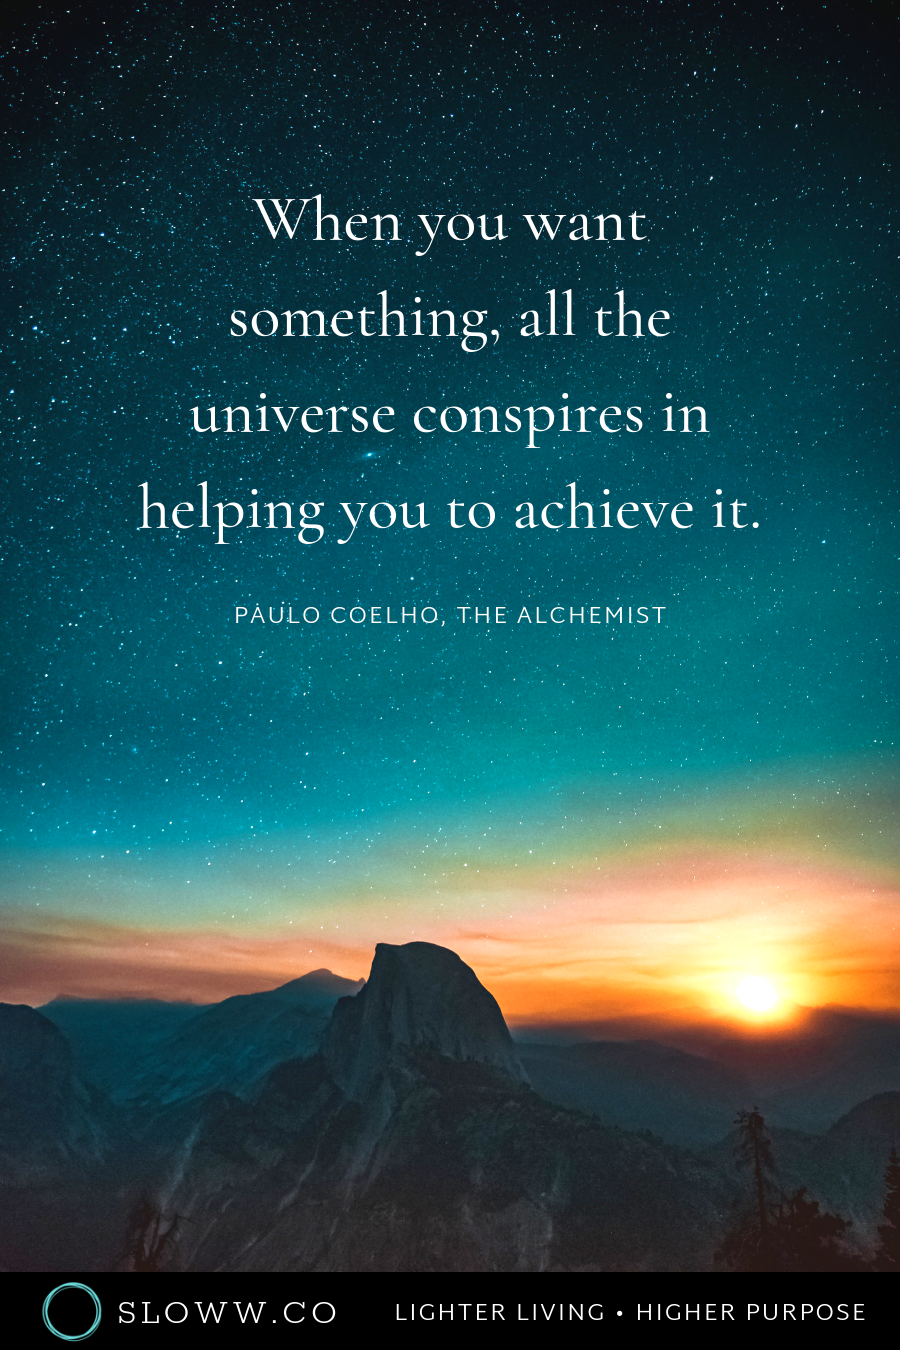 Paulo Coelho The Alchemist Quote Life Pictures If You Paraphrase A Do Oyu Need Quotations